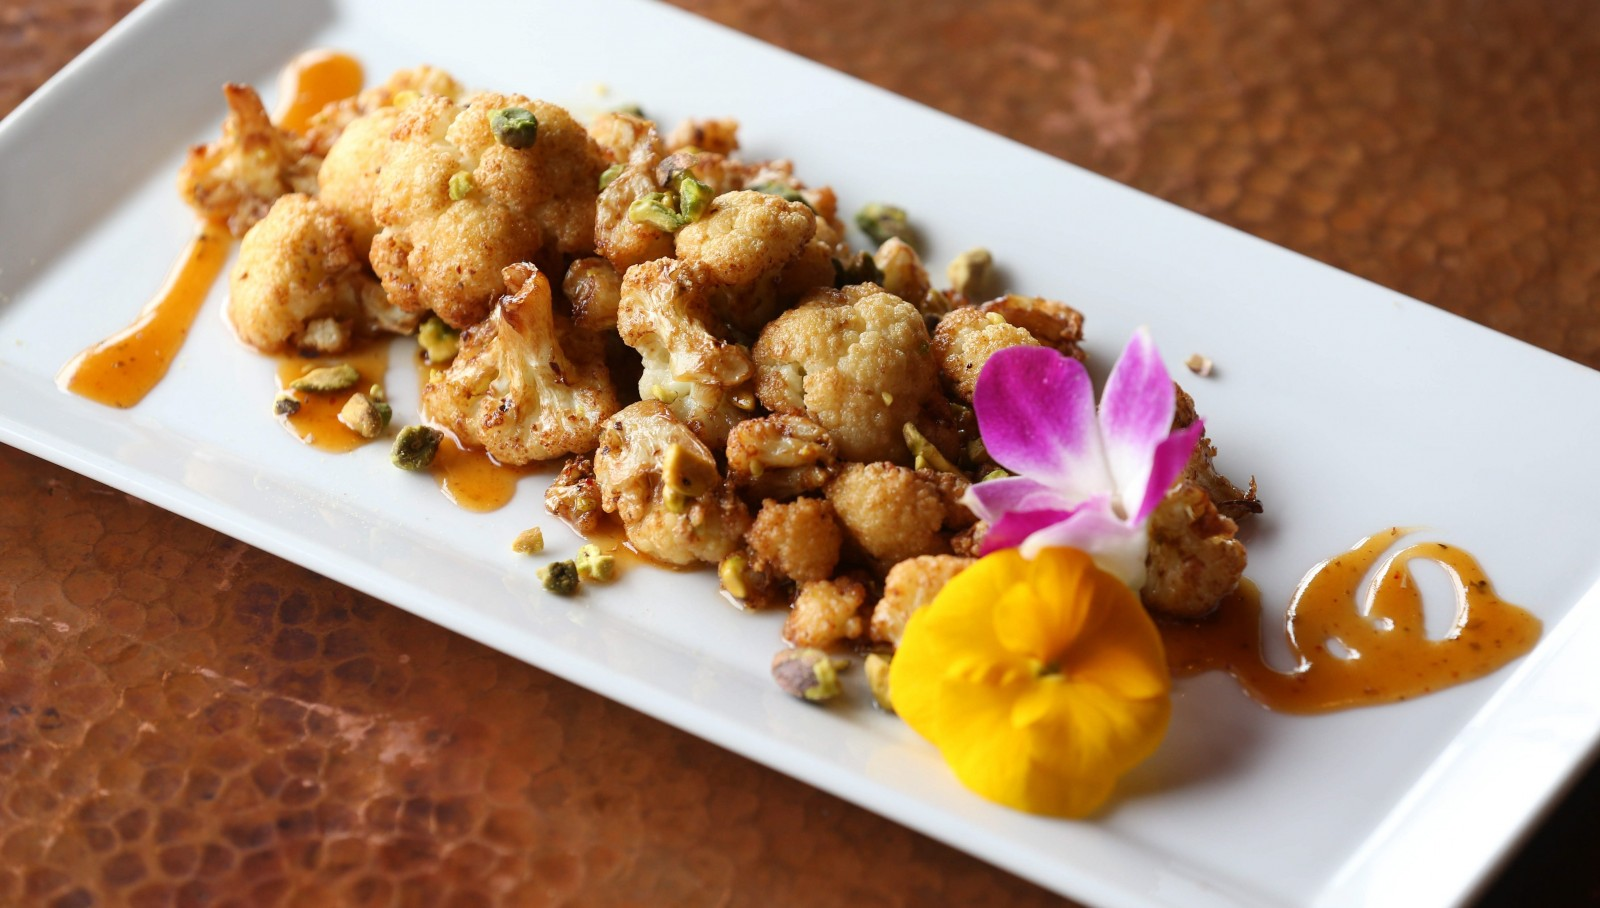 The Coliflor Frito (fried cauliflower) at Brioso by Butterwood has a coating of honey-chipotle sauce. (Sharon Cantillon/Buffalo News)